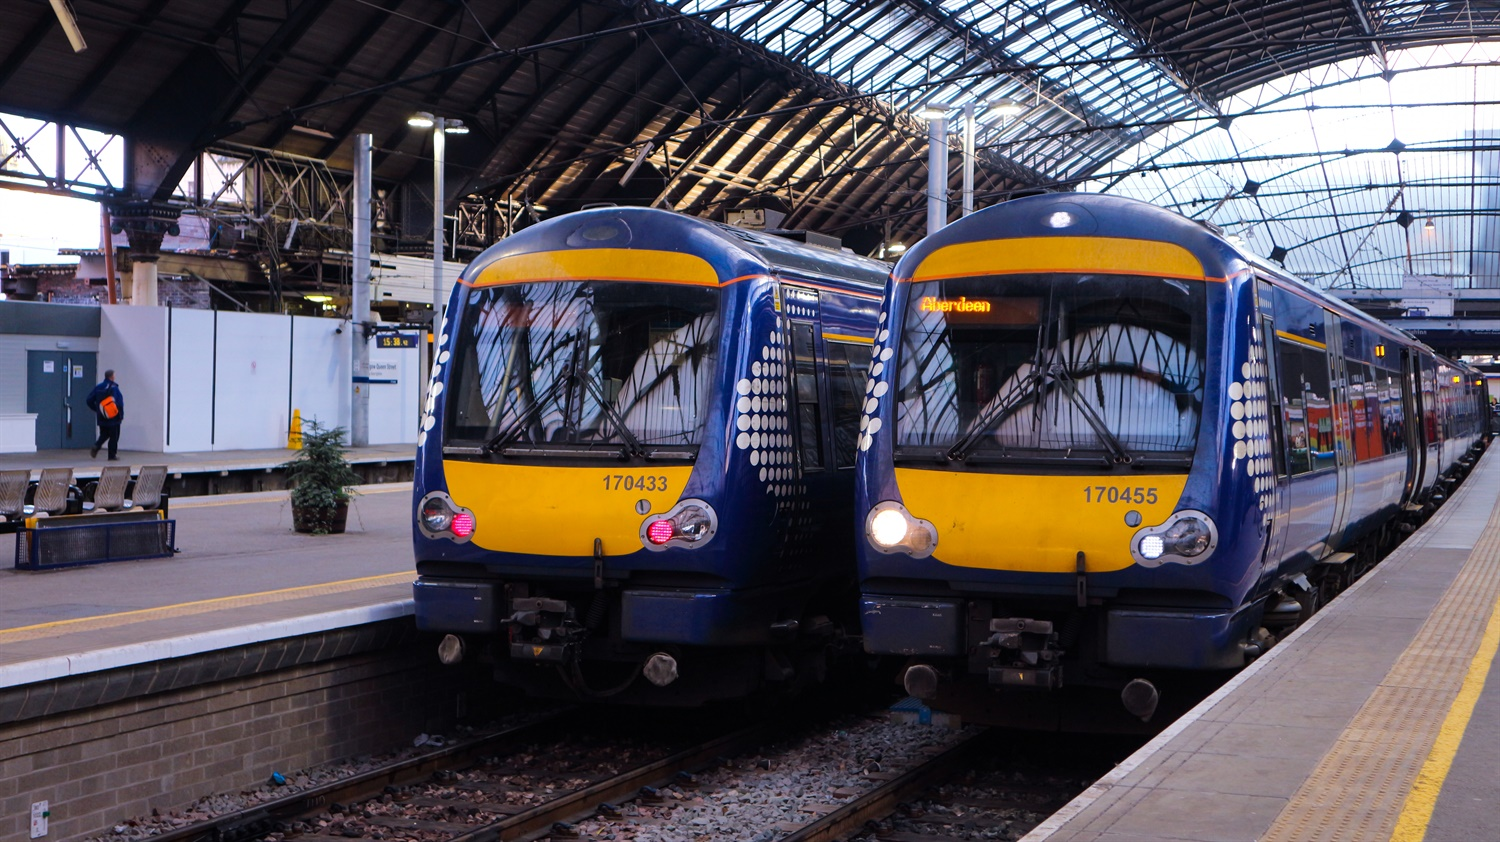 Transport secretary threatens ScotRail with franchise termination if it misses improvement targets